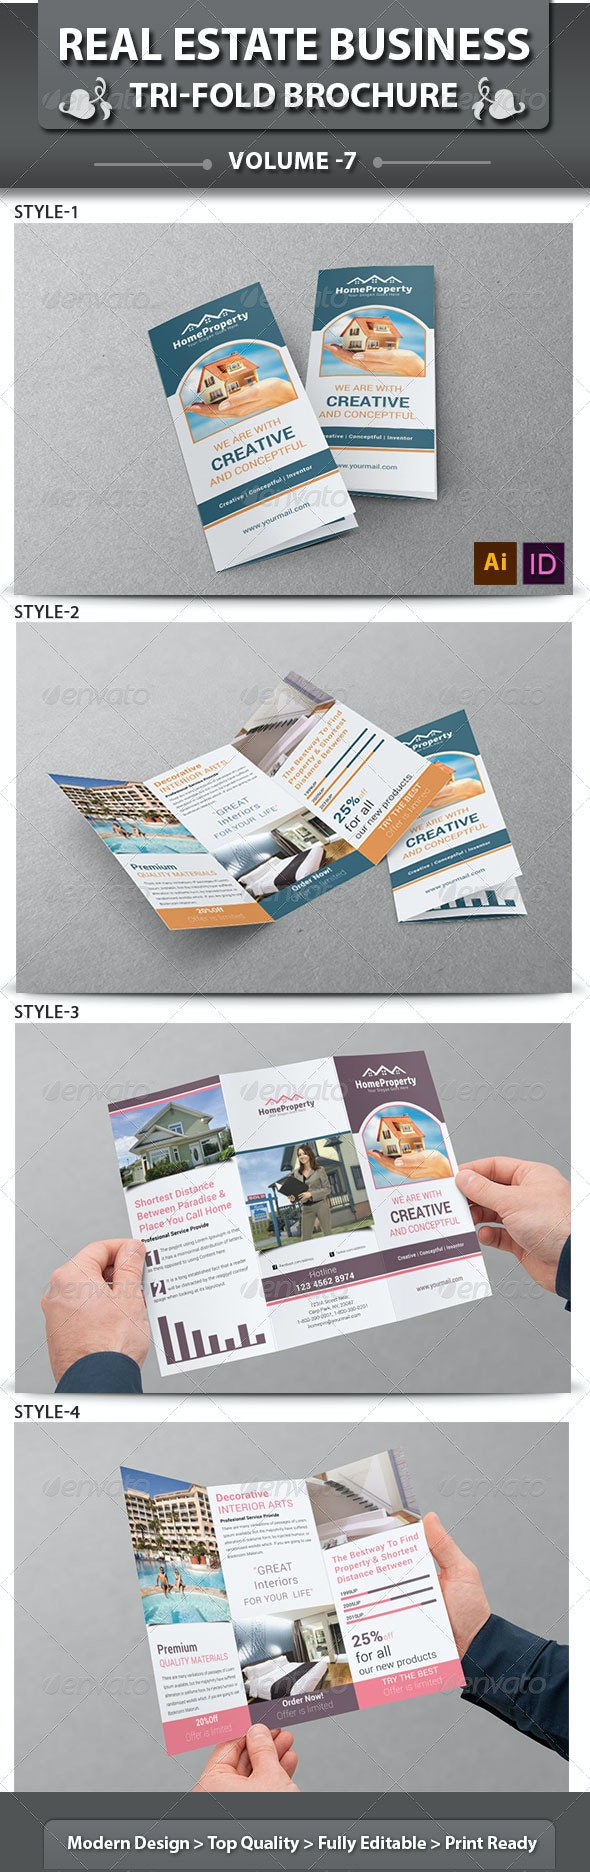 Real Estate Business Tri-fold Brochure | Volume 7 - Corporate Brochures